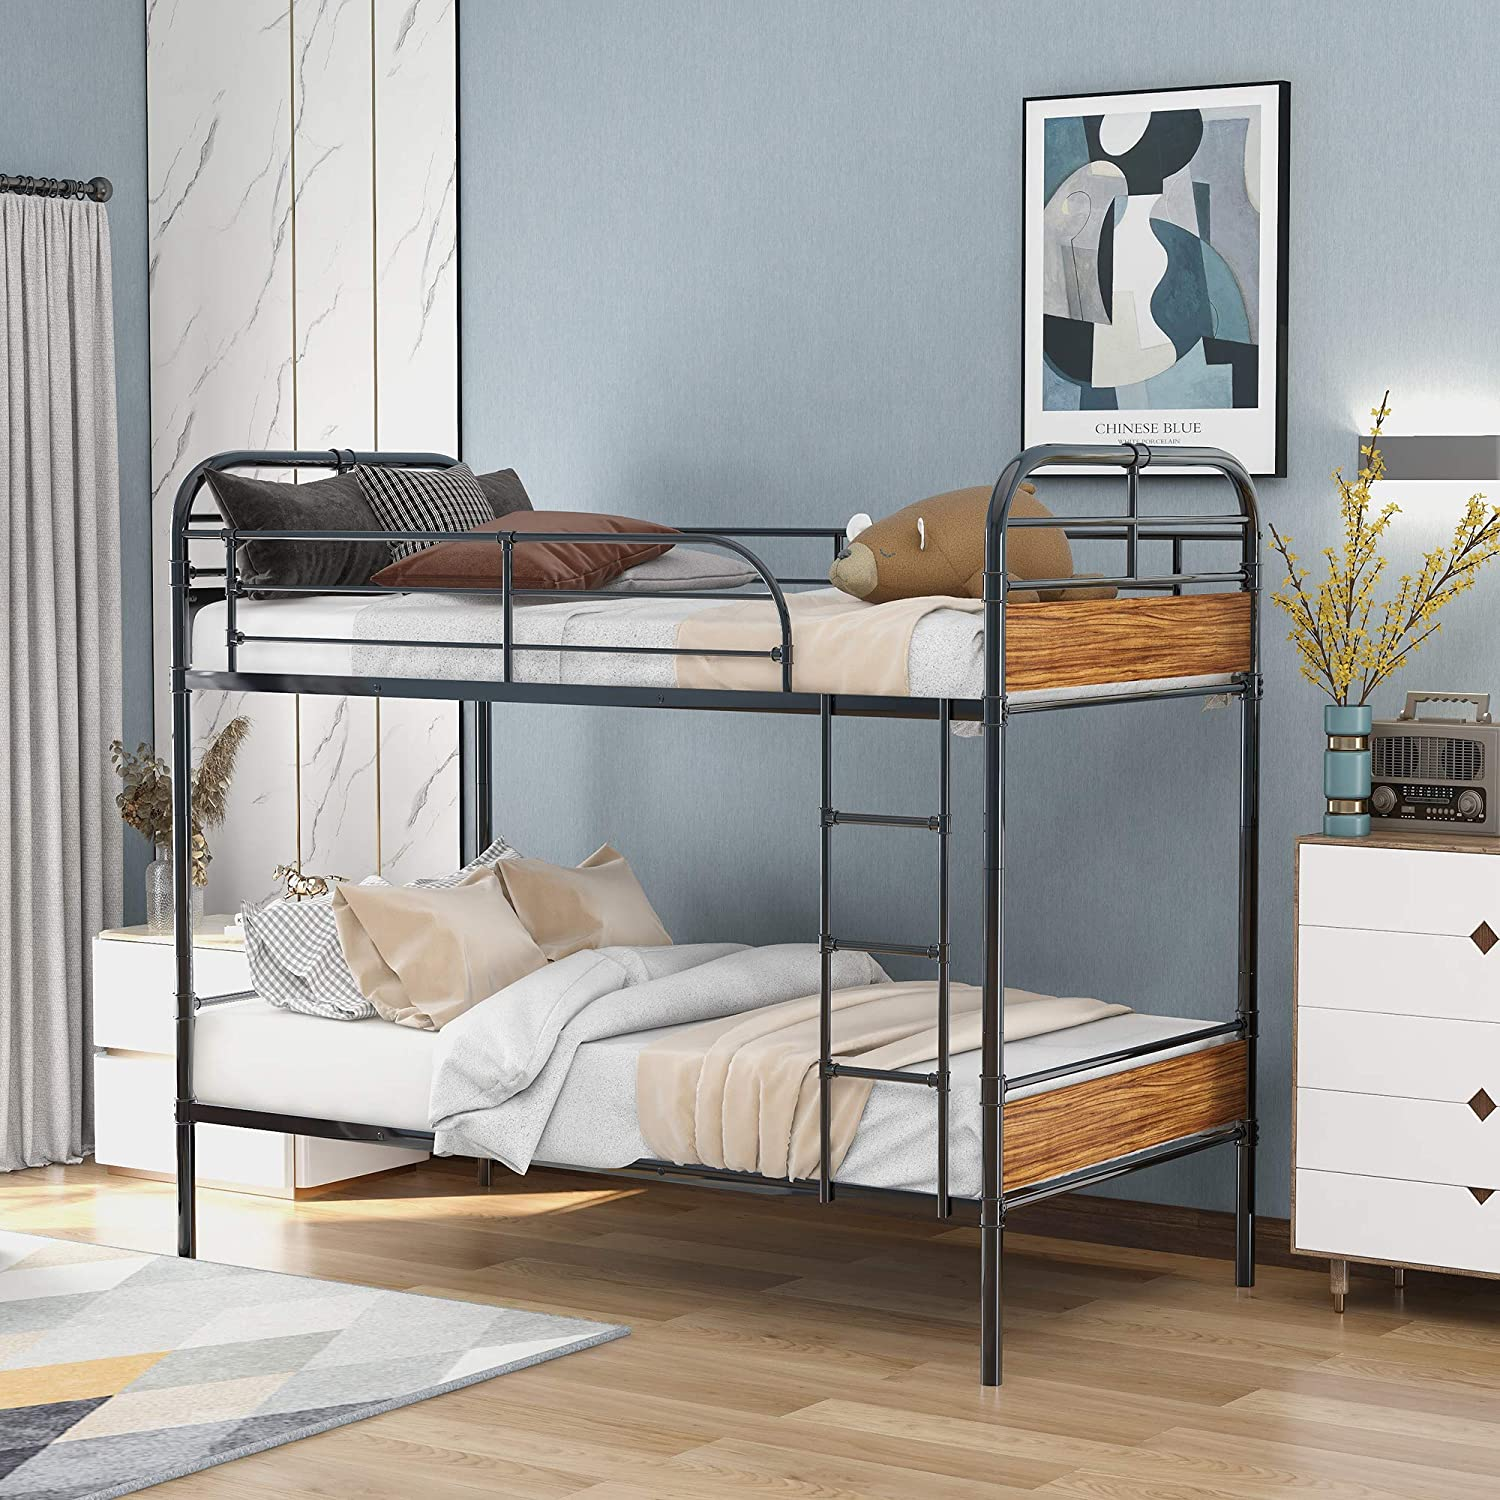 Twin Over Twin Metal Bunk Bed Metal Bunk Bed With Sturdy Steel Frame And Wooden Headboards Convertible To Separate 2 Beds Metal Wood Walmart Com Walmart Com